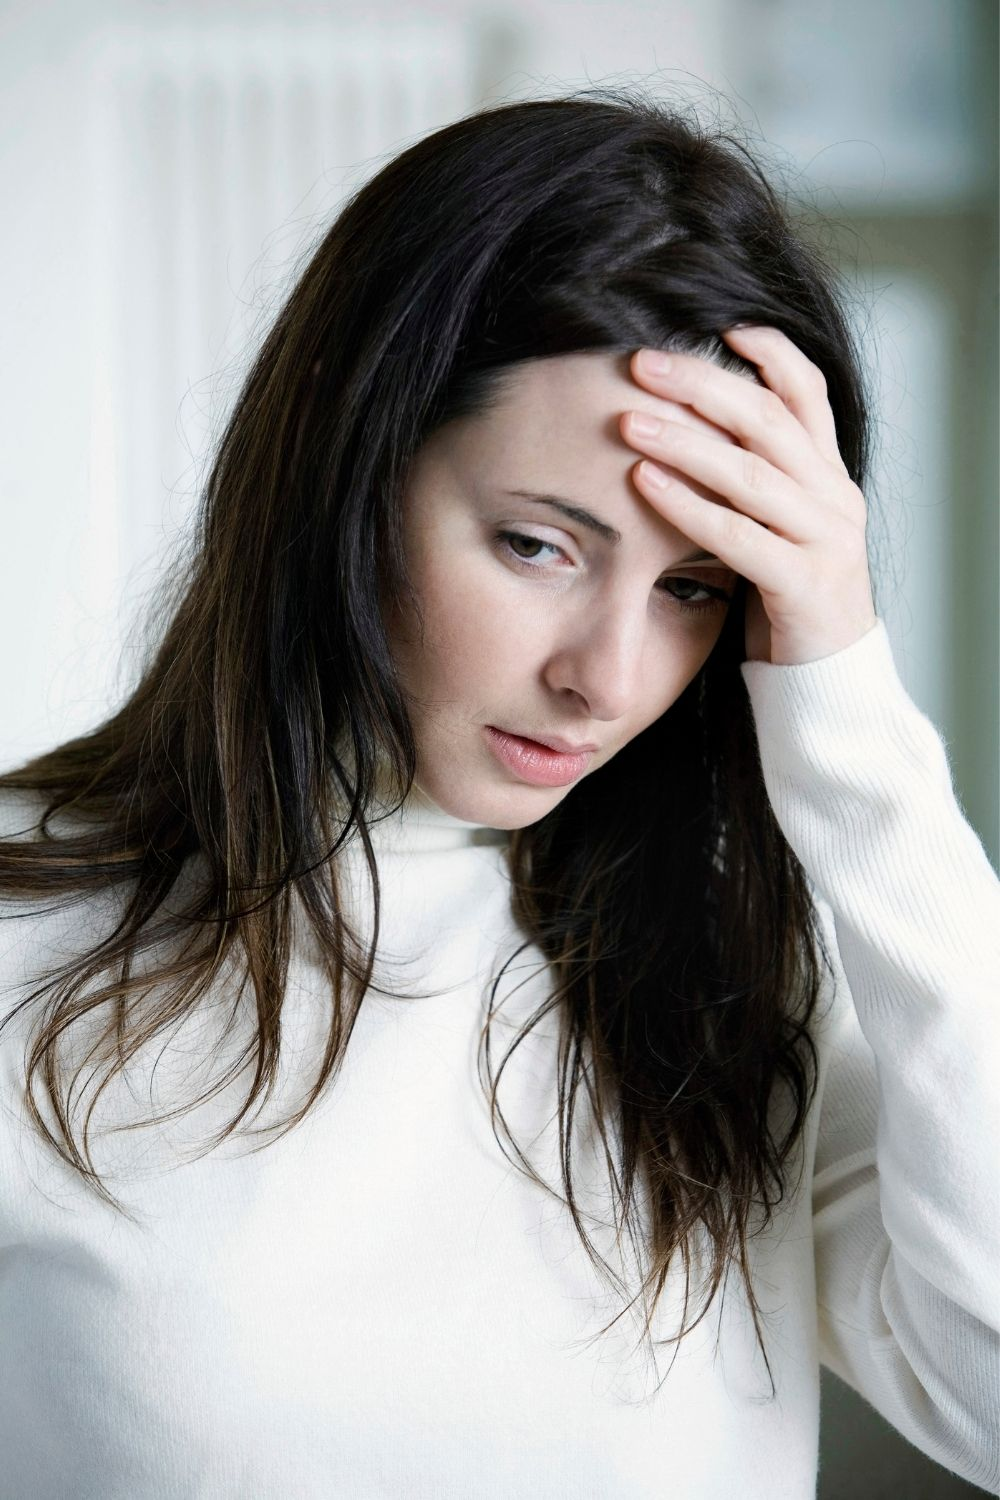 addressing the stigma of migraines and headaches